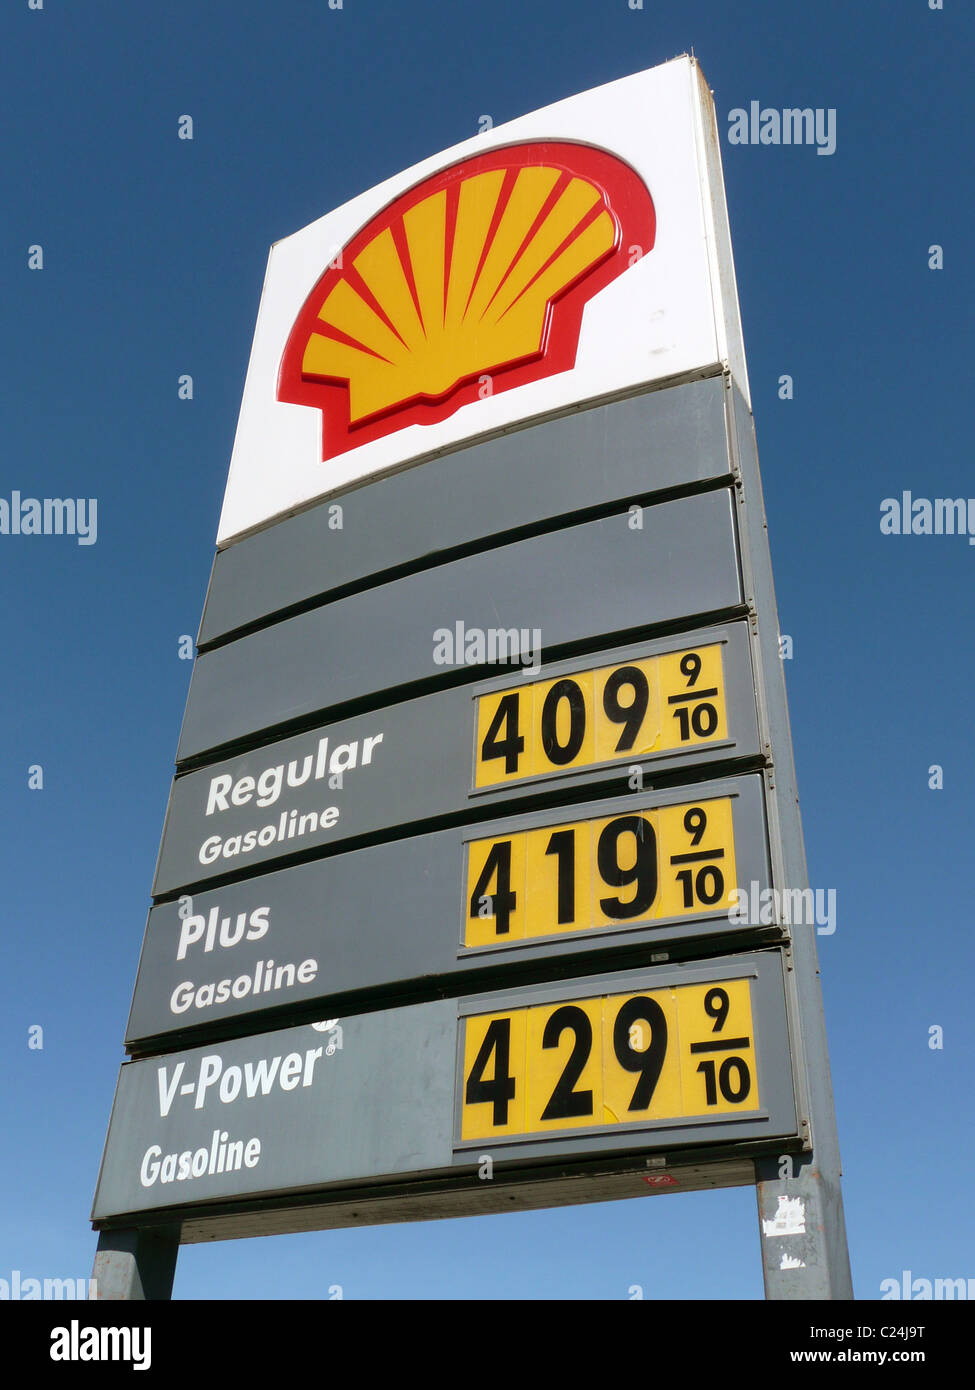 Gas Prices In California >> Shell gas station sign showing gasoline prices over $4 per gallon Stock Photo: 35752244 - Alamy